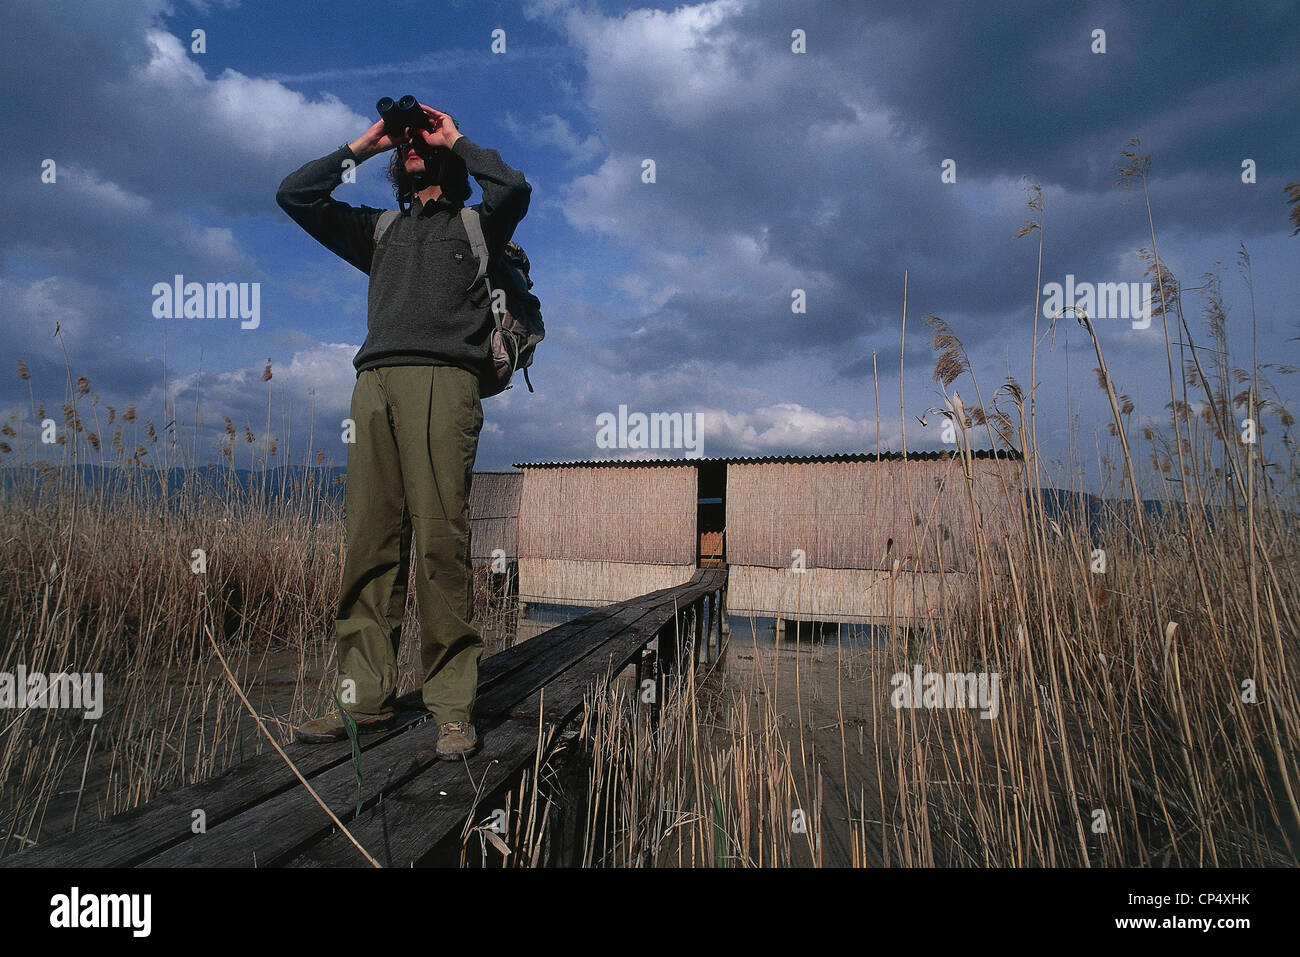 Umbria - Alviano (Tr) - WWF - Birdwatching in the reeds. - Stock Image